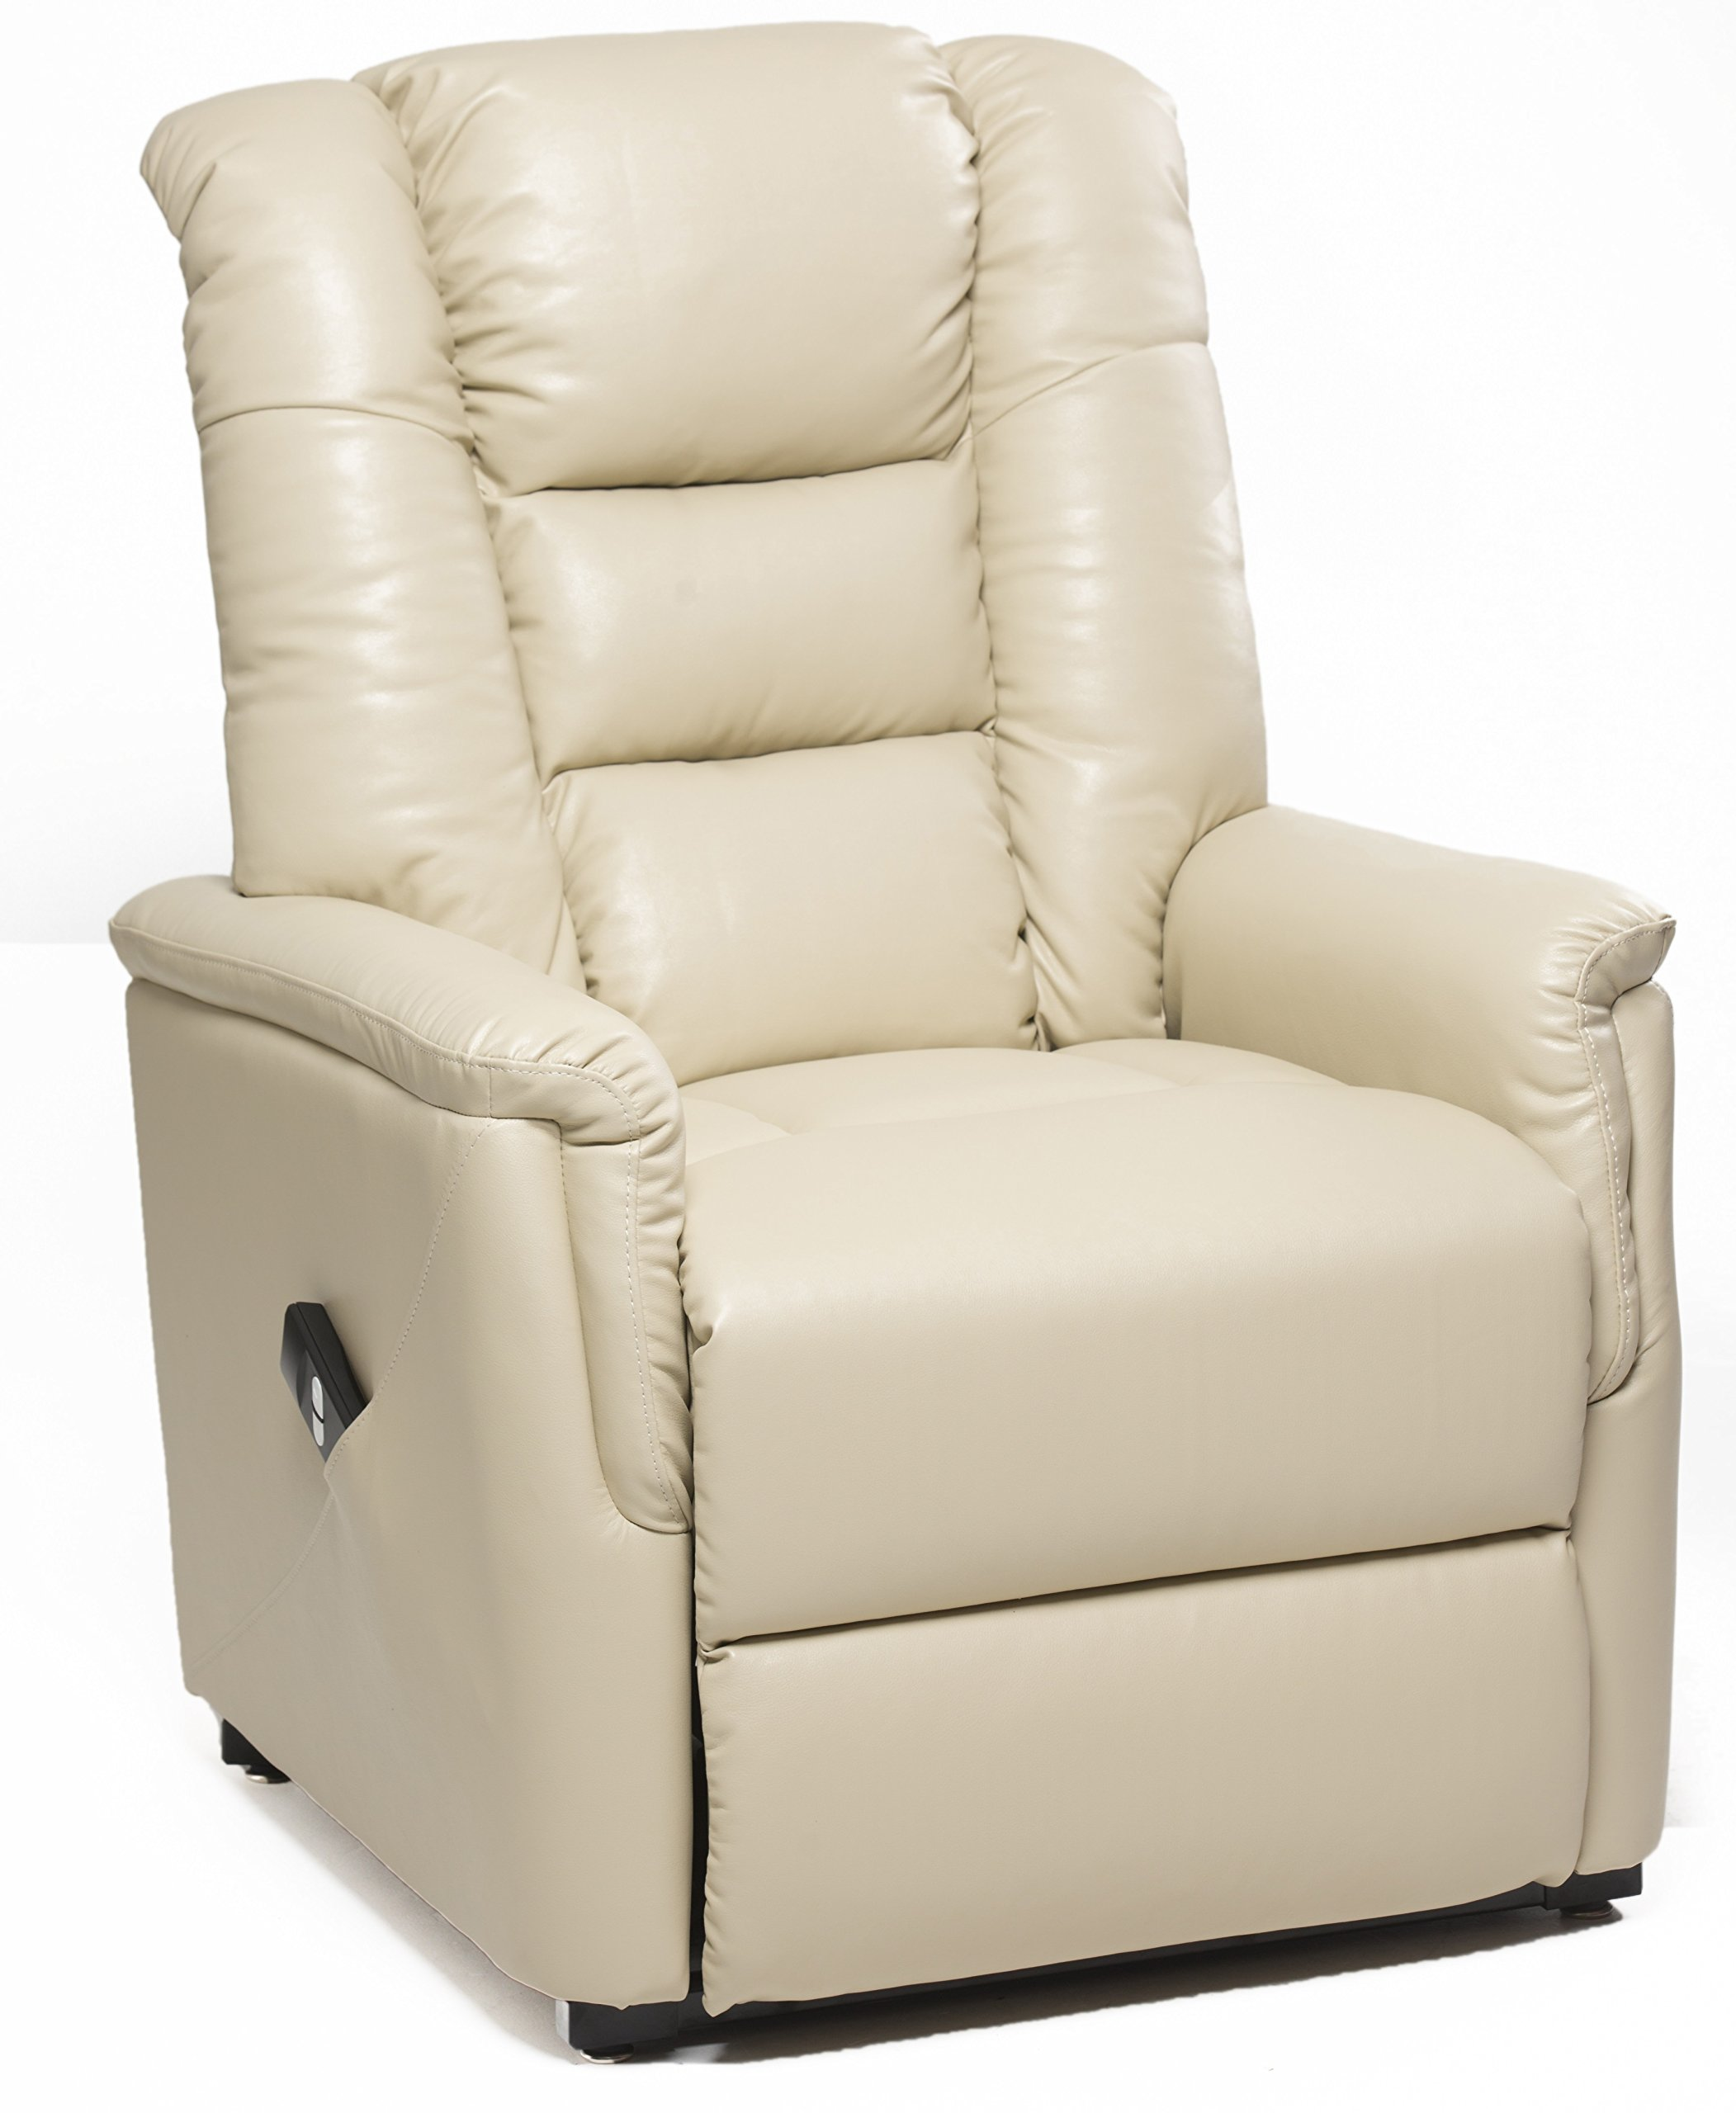 The Bradfield Riser Recliner Chair In Faux Leather (PU). Single Motor, Easy